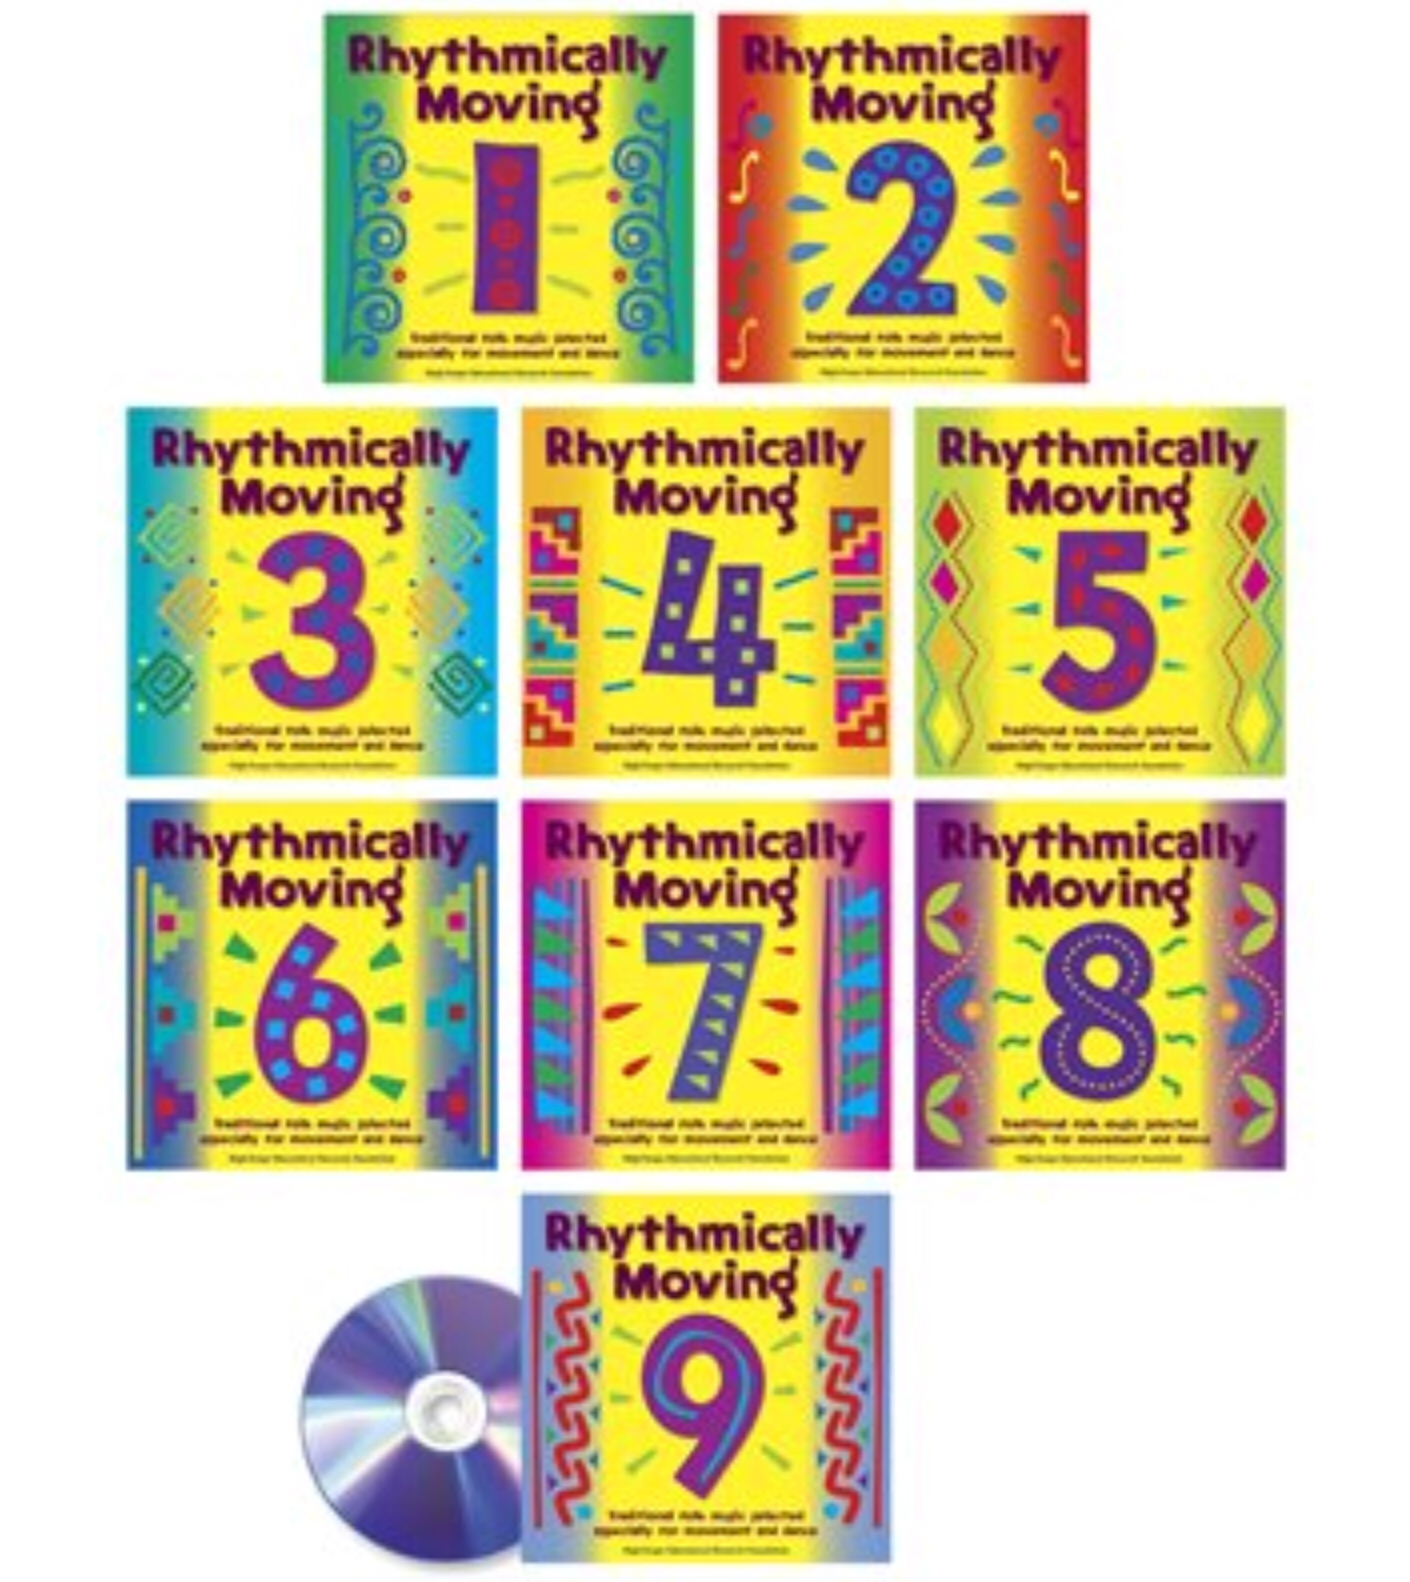 Rhythmically Moving, 9 CD Set by Highscope Publications